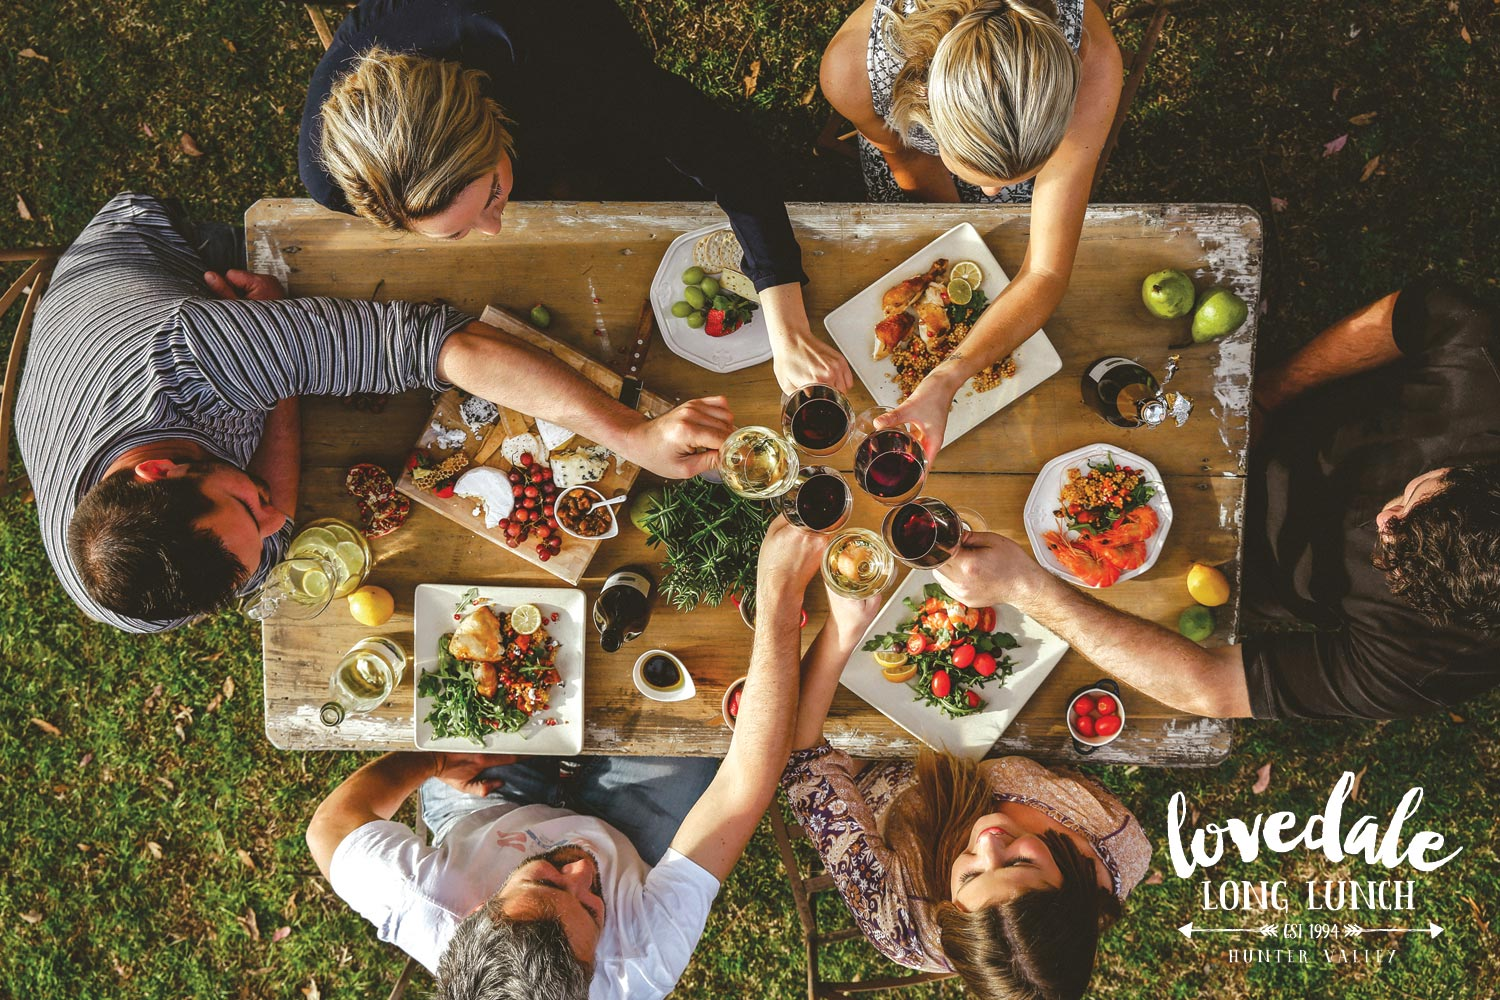 official poster of Lovedale Long Lunch